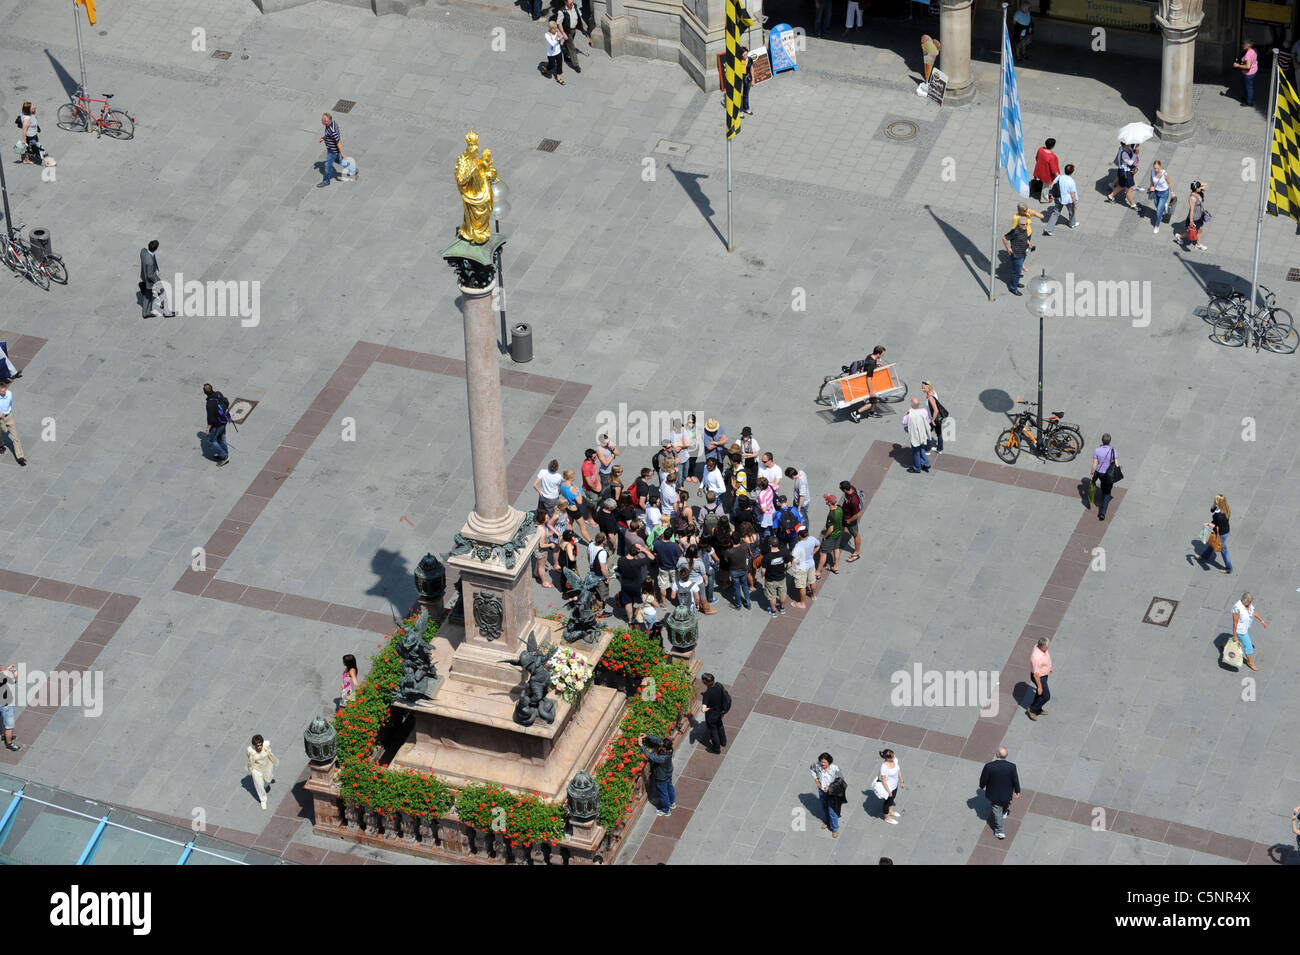 Crowds in Marienplatz Munich Bavaria Germany Munchen Deutschland Stock Photo